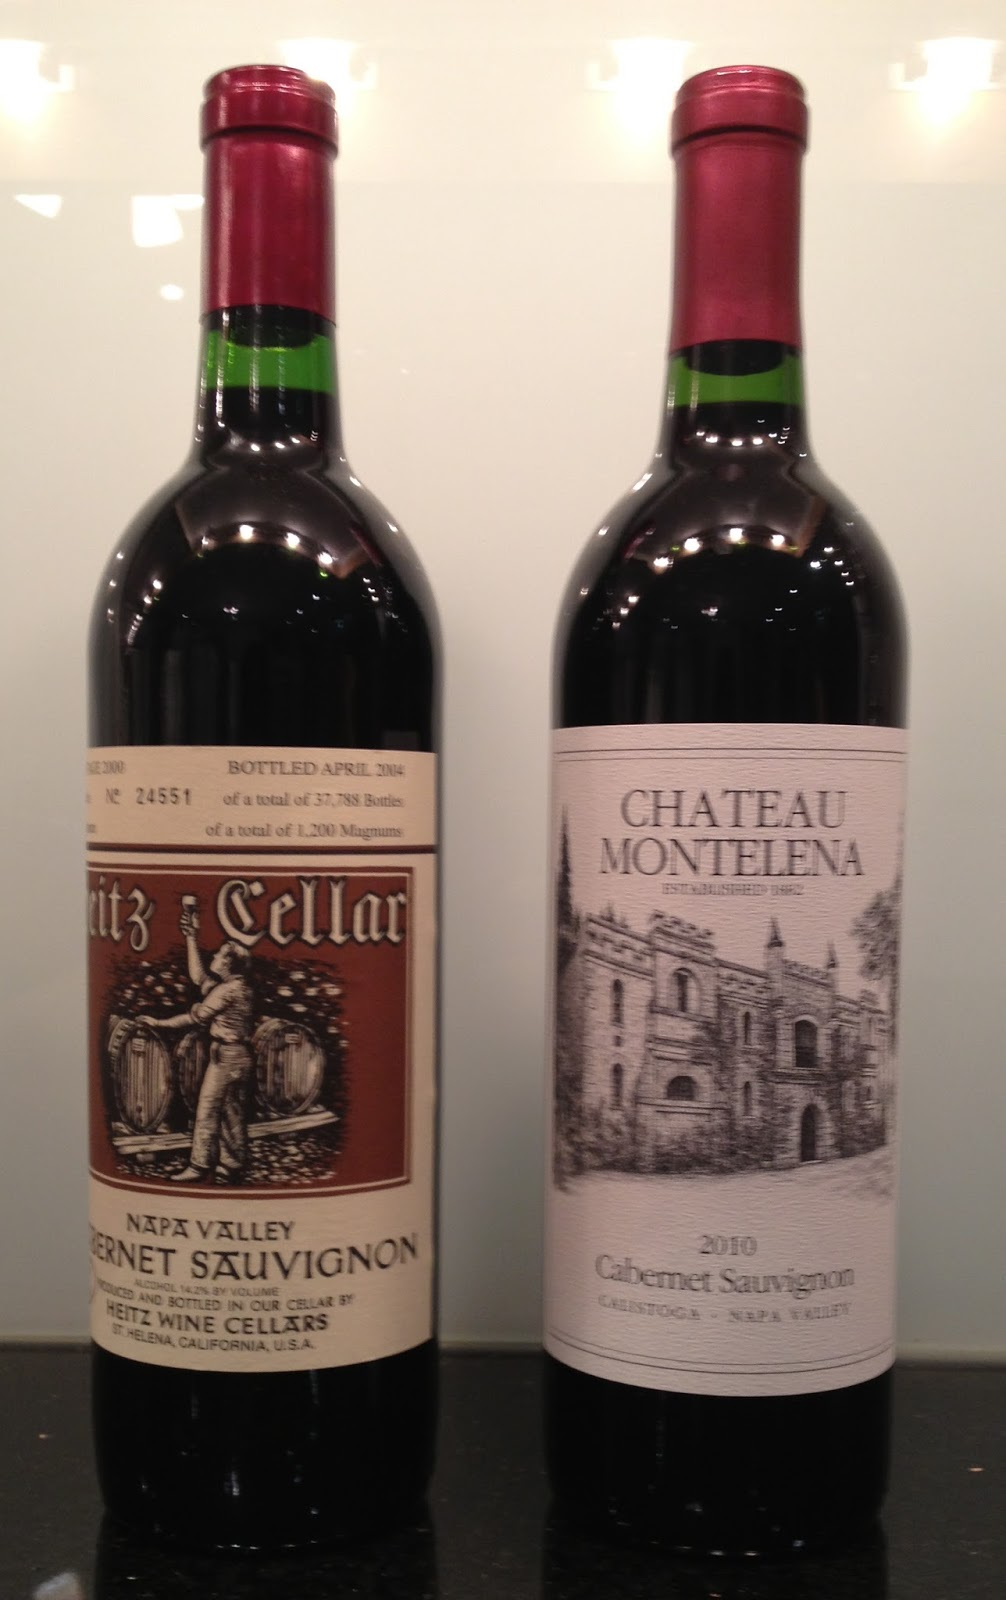 I was in the mood for Napa Cabernet Sauvignon and found a classic bottle 2000 Heitz Cellaru0027s Marthau0027s Vineyard on sale for half price so I had ... & 2000 Heitz Cellar Cabernet Sauvignon Marthau0027s Vineyard and 2010 ...